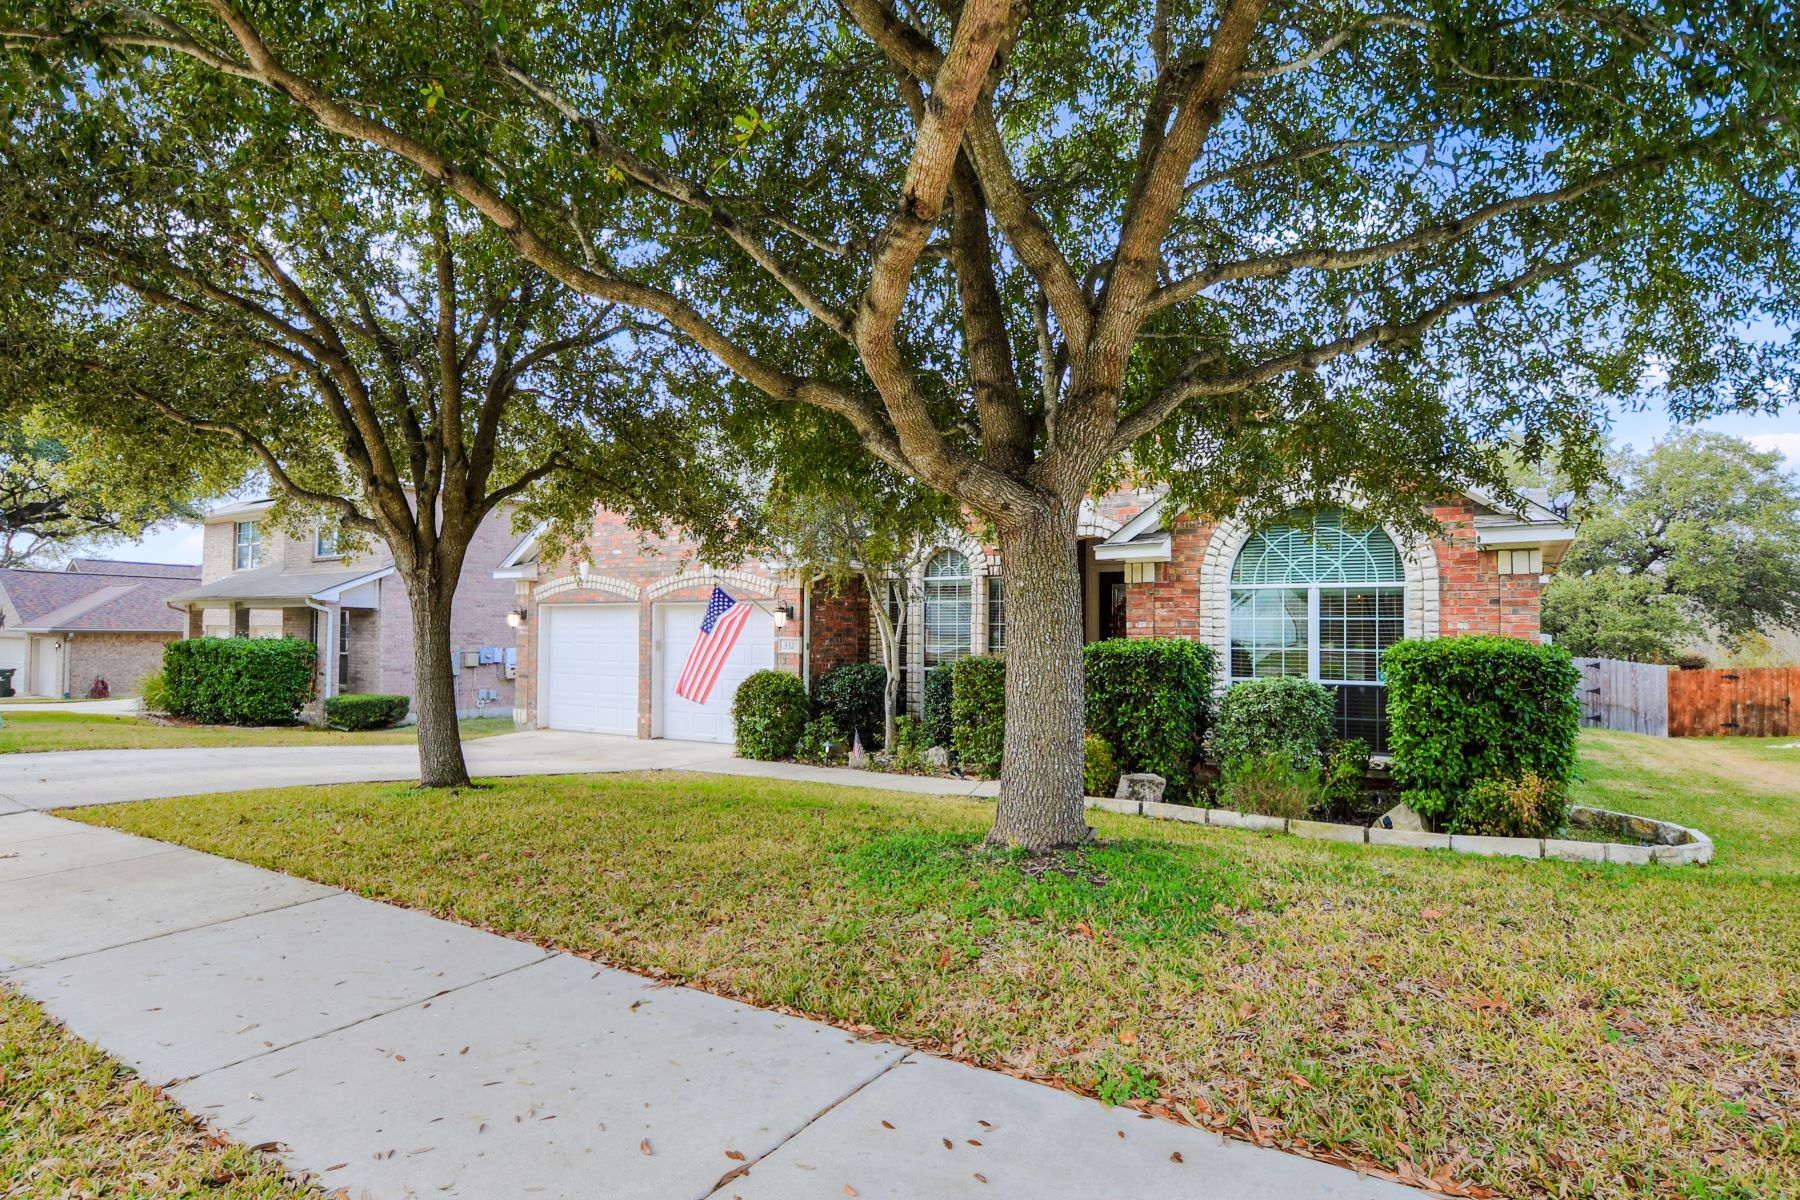 Single Family Homes for Active at Single Story Home with Pool 332 Brush Trail Bend Cibolo, Texas 78108 United States